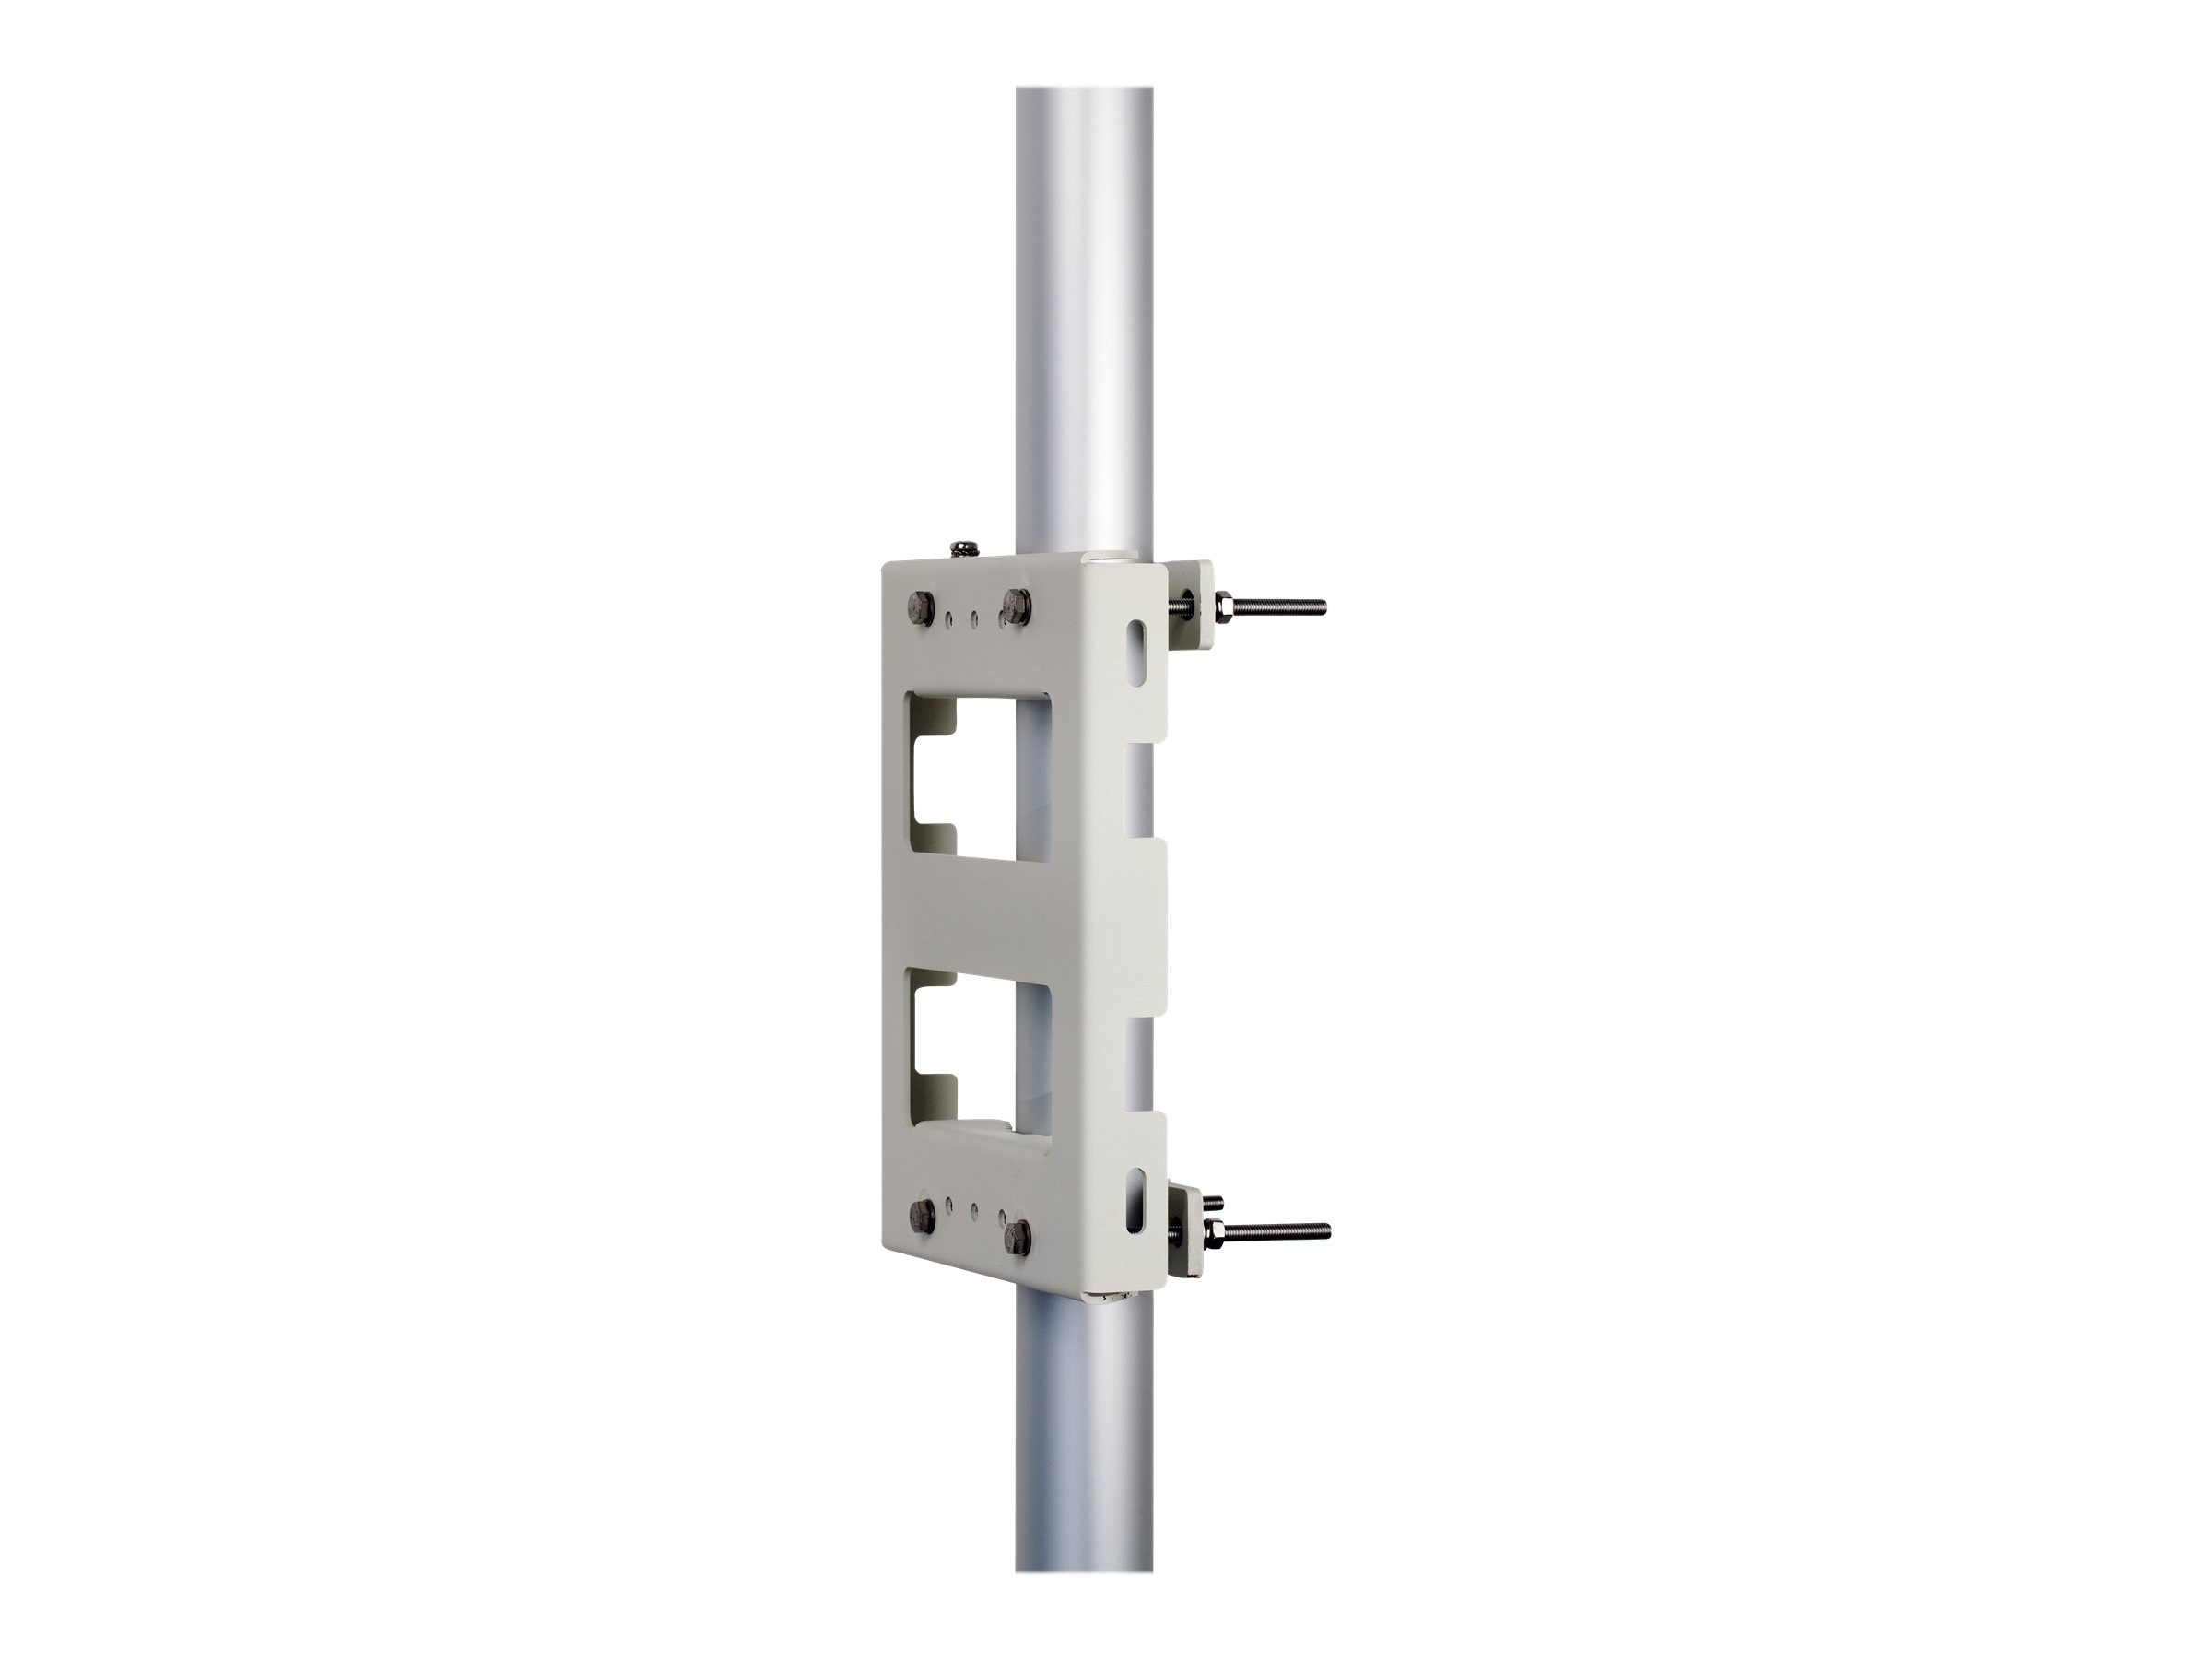 Axis Pole Bracket for T8124-E